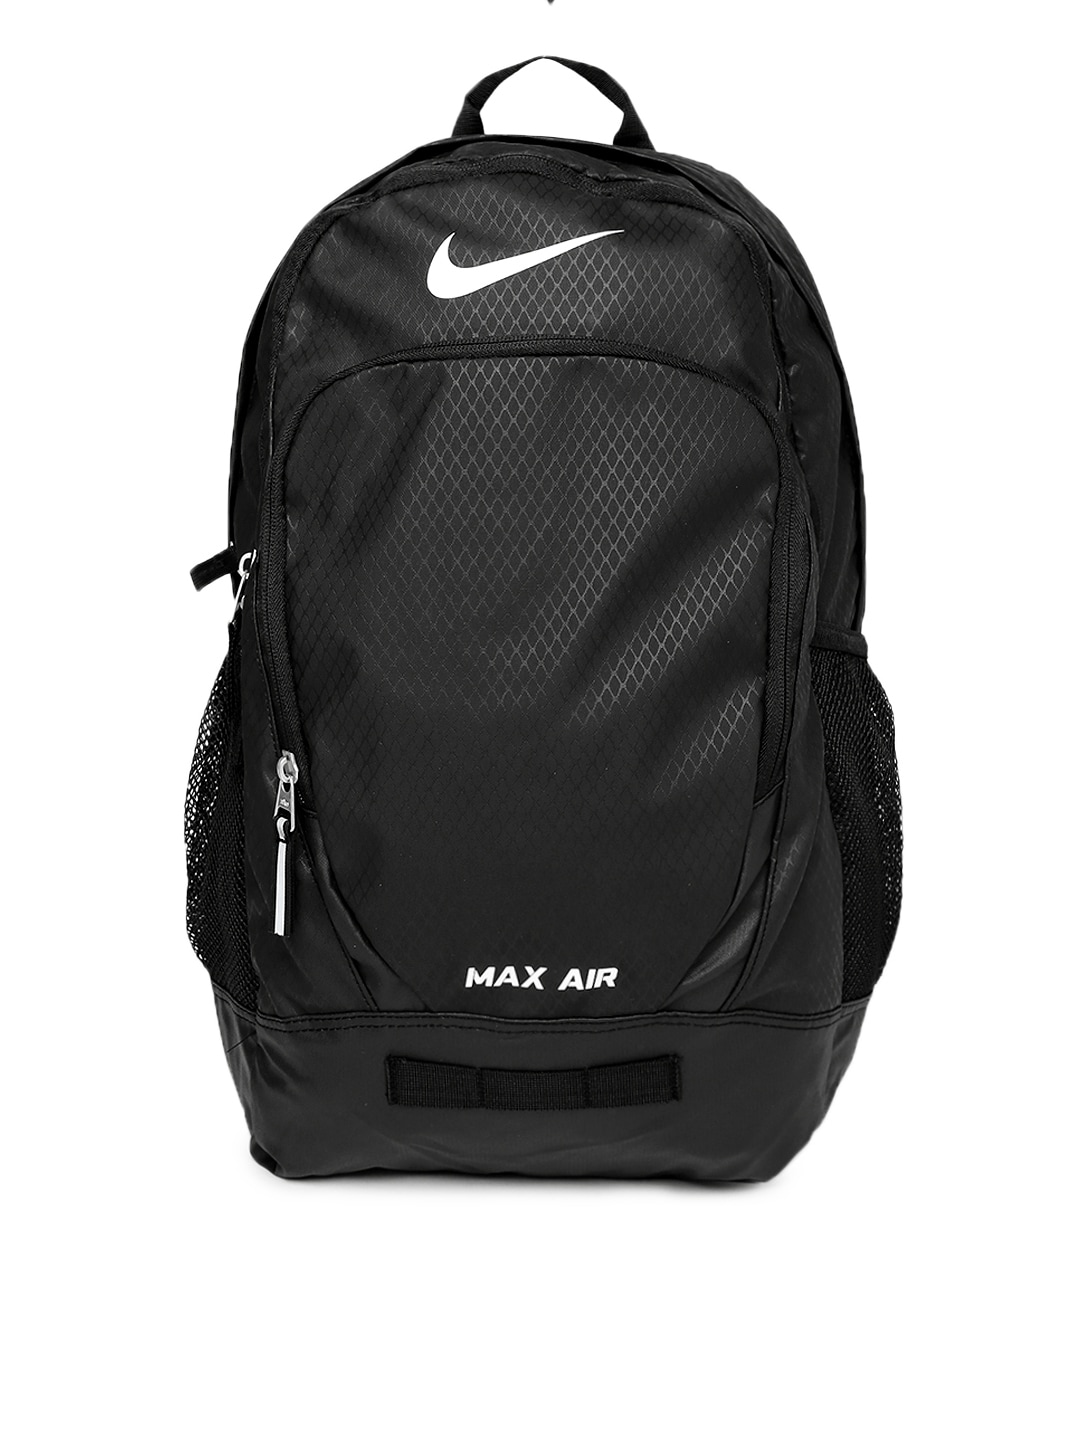 new style fccff 341ac Nike ba4890-001 Unisex Black Team Training Max Air Backpack- Price in India